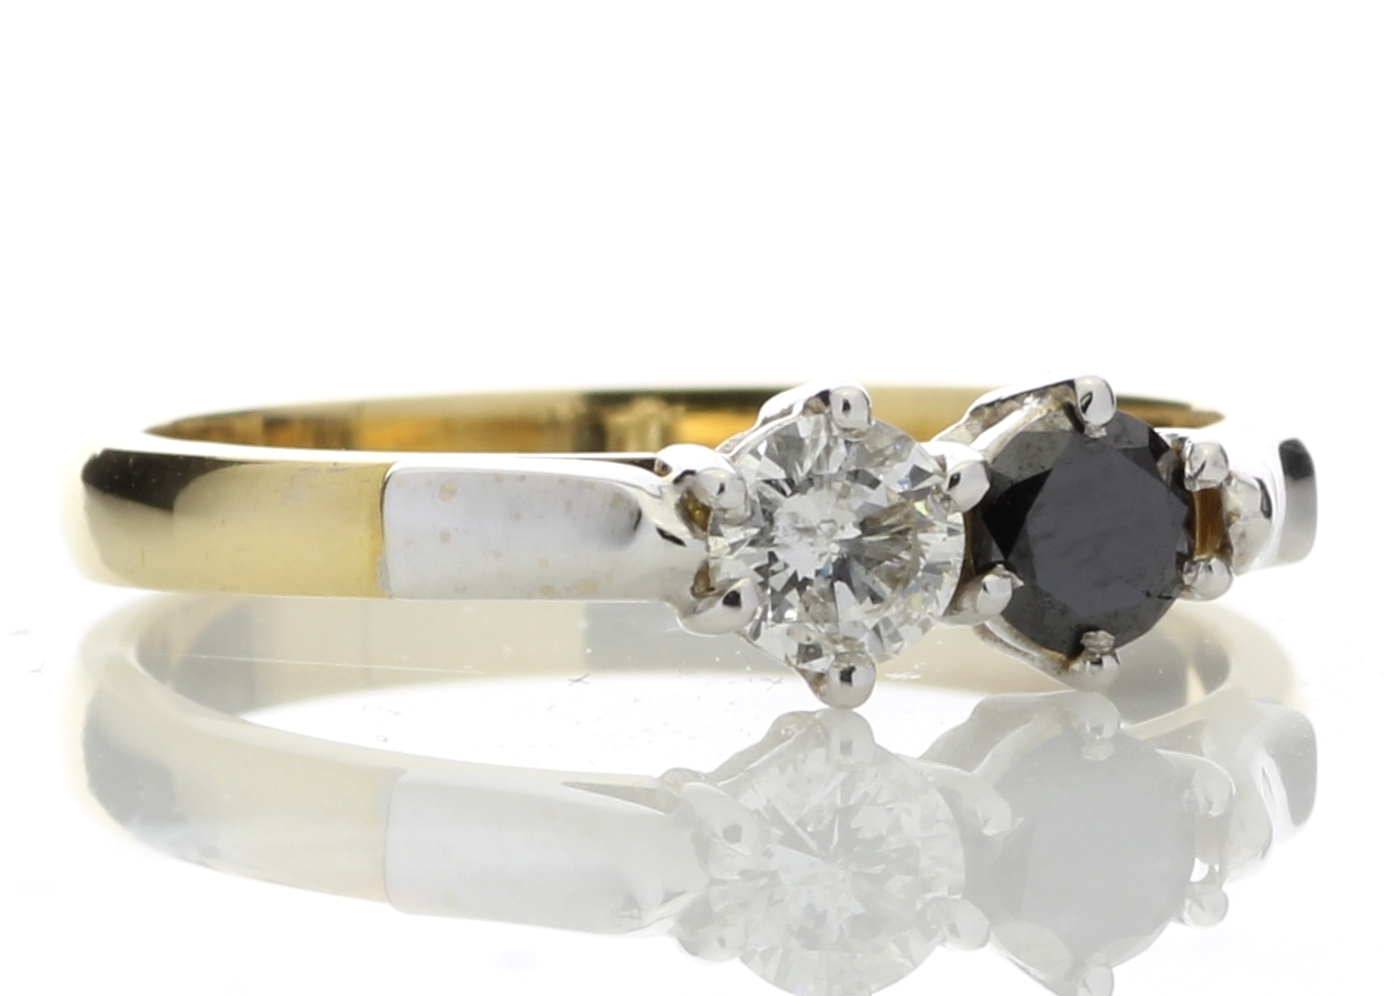 18ct Two Stone Claw Set Diamond With Black Treated Stone Ring 0.50 Carats - Image 4 of 4